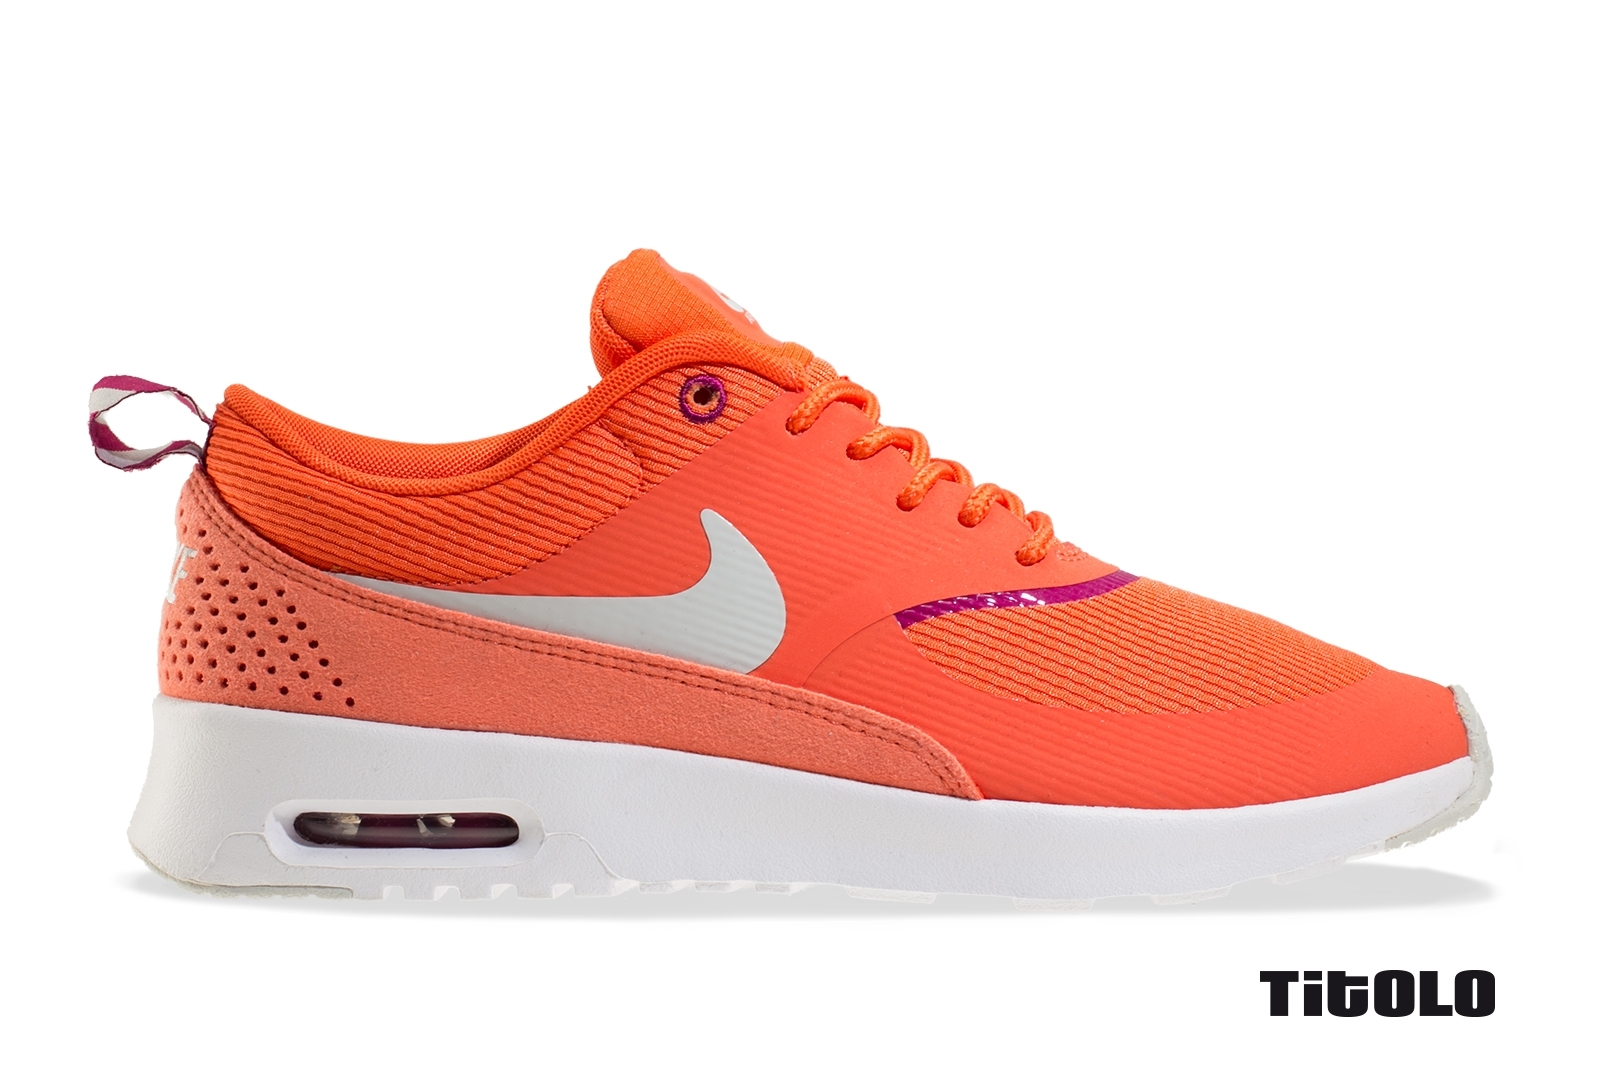 Nike Wmns Air Max Thea 599409-800 599409 800 Turf Orange/Spray-Bright Magenta-Wh